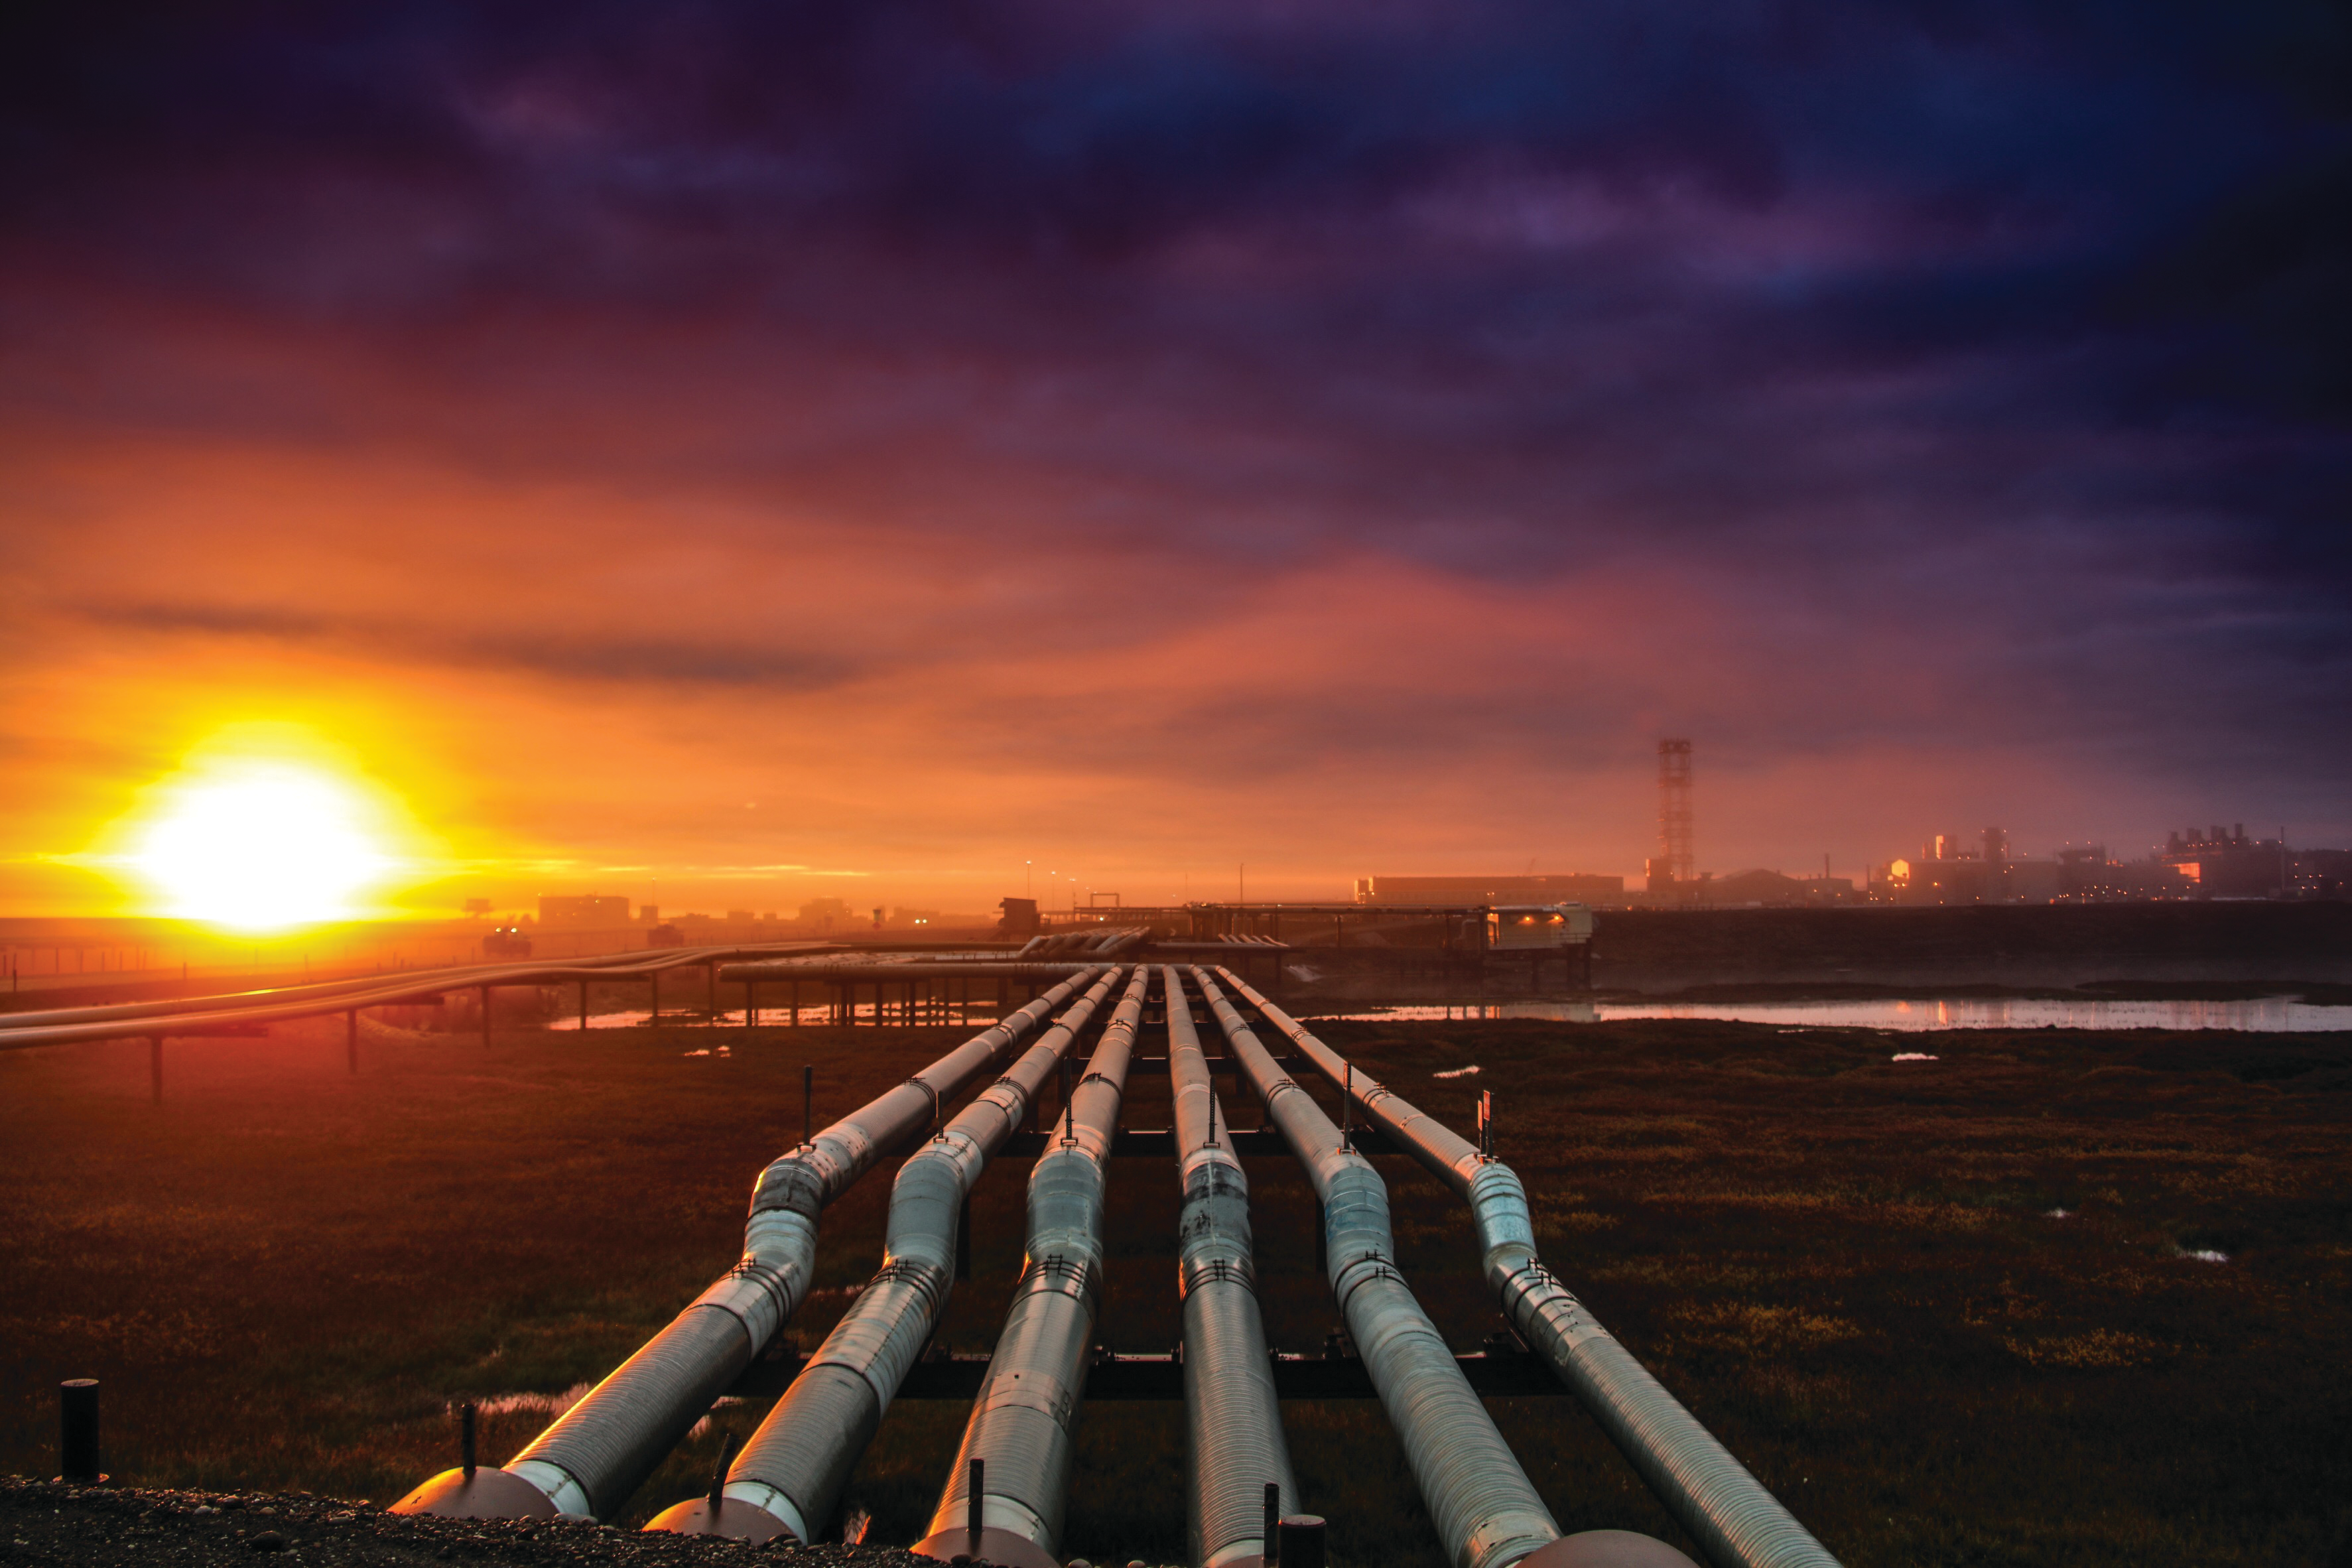 GCI is equipping smart oil fields with tech solutions like IIoT and AR to help oil companies make faster and better-informed decisions.